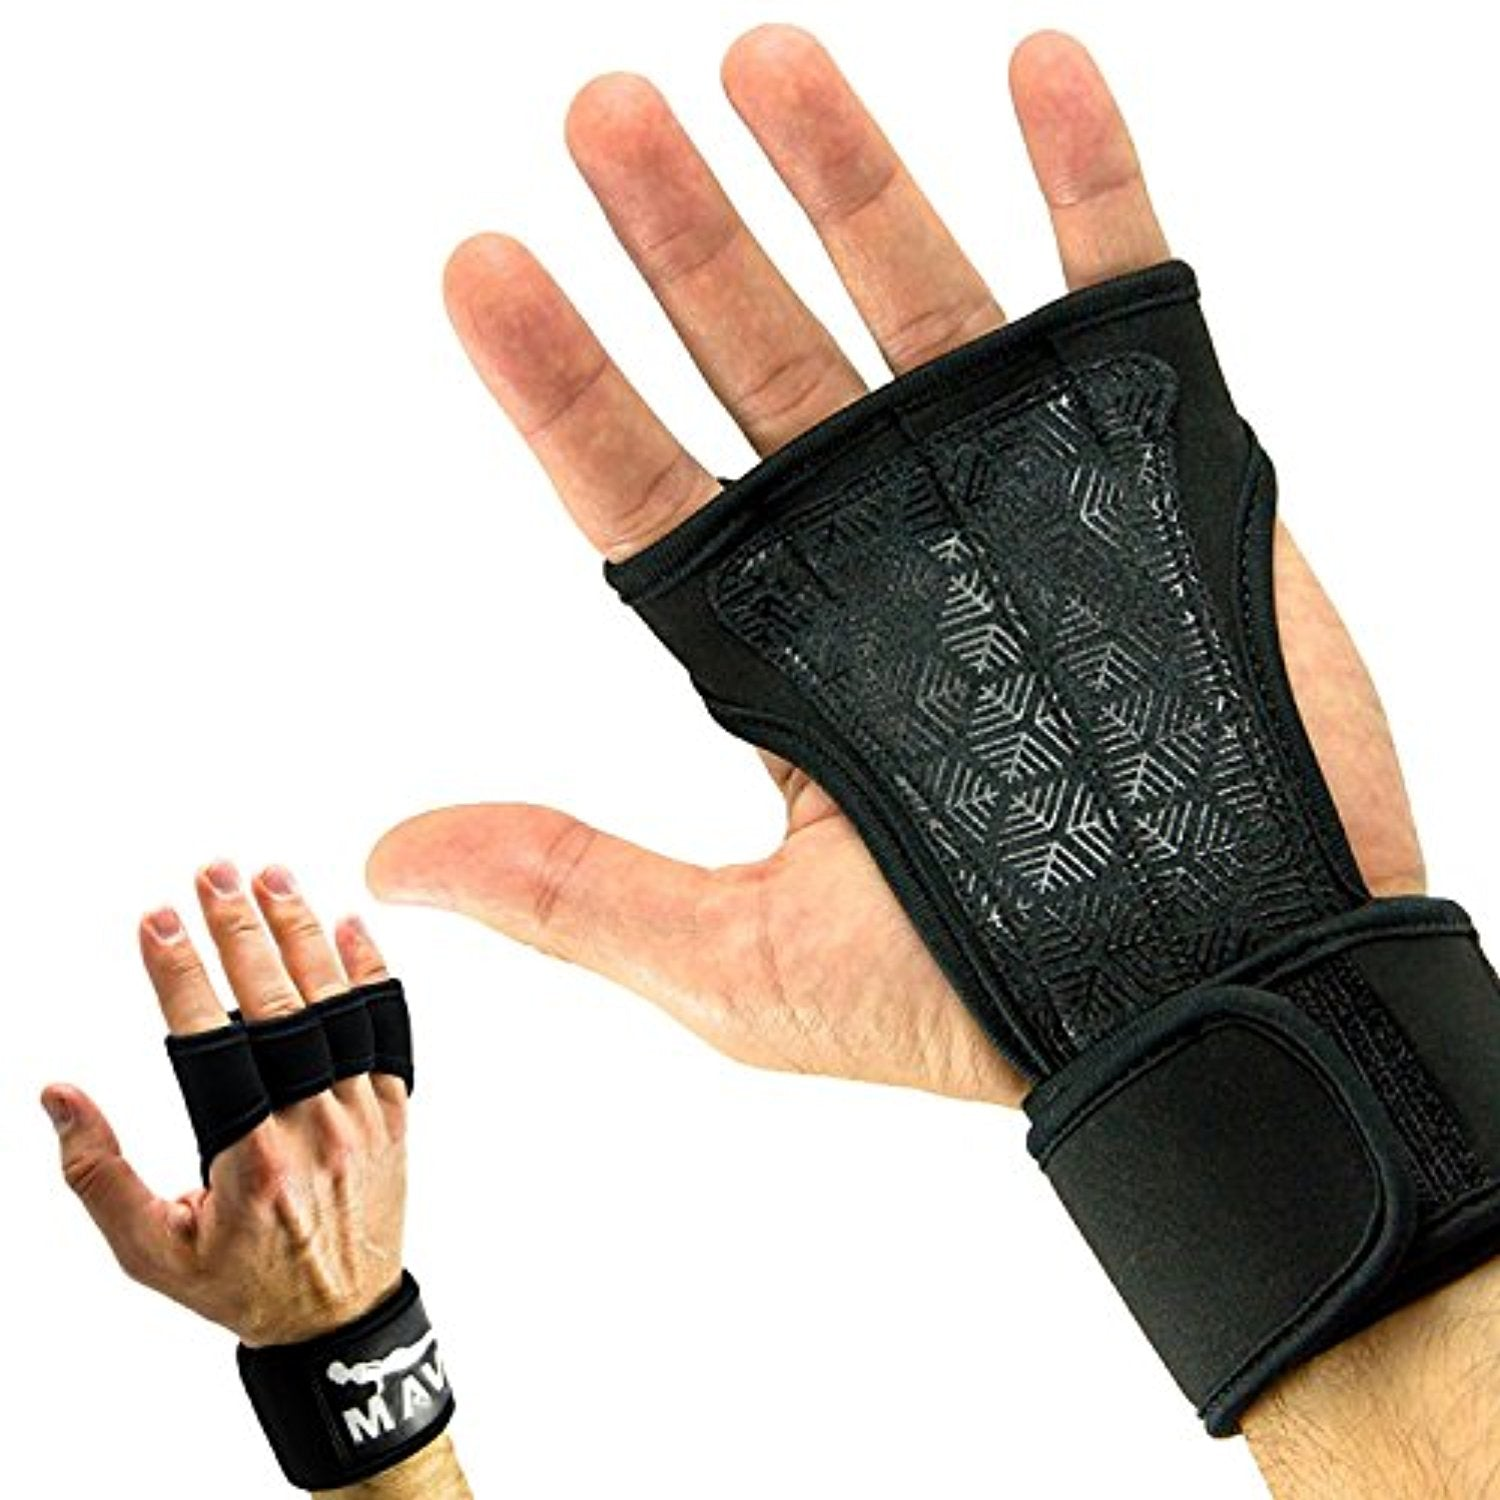 Cross Training Gloves with Wrist Support for Crossfit WODs and Gym Workout - Everyday Crosstrain